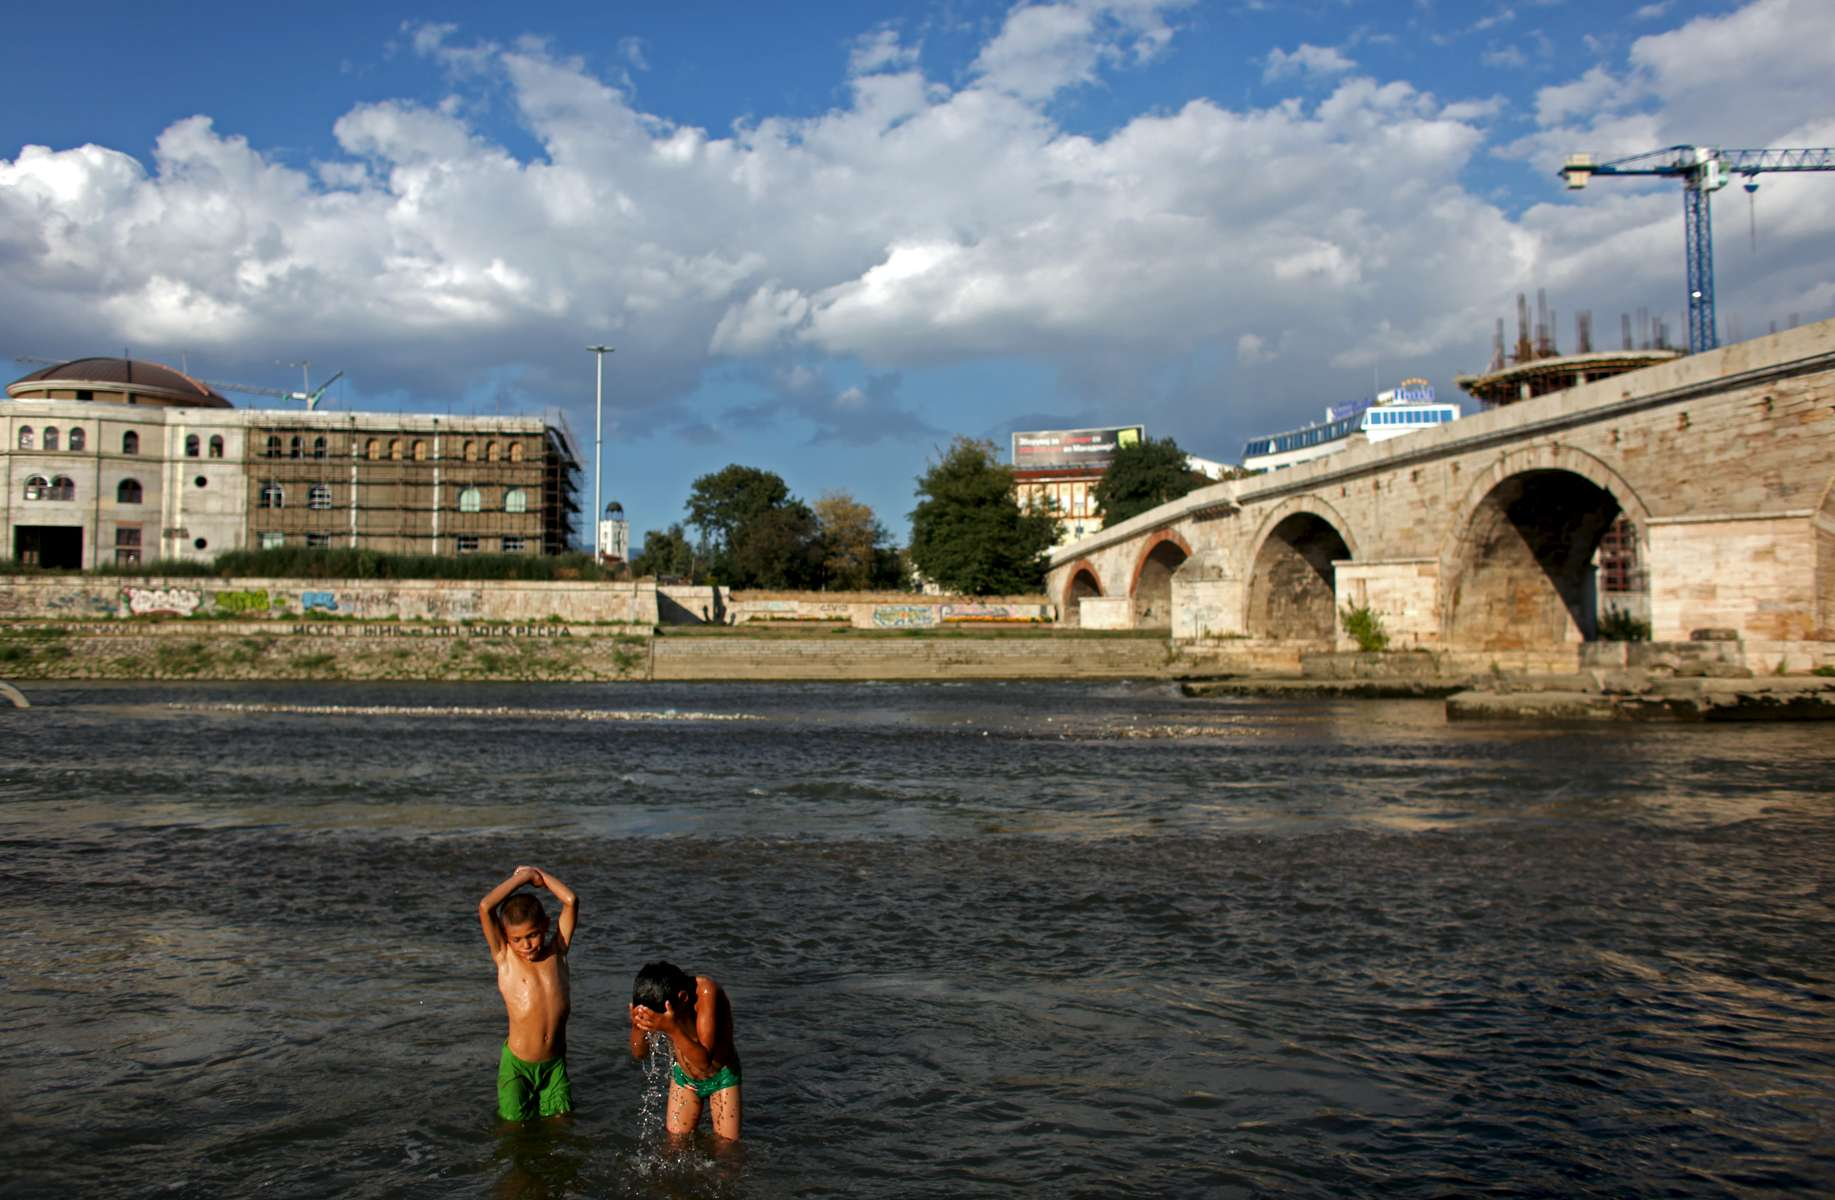 (L-R) Two Macedonian gypsy boys, Elis and Martin, swim in the river Vardar near the Stone Bridge in Skopje, Macedonia on Sunday, September 05, 2010.  (For The New York Times)(For The New York Times)(For The New York Times)